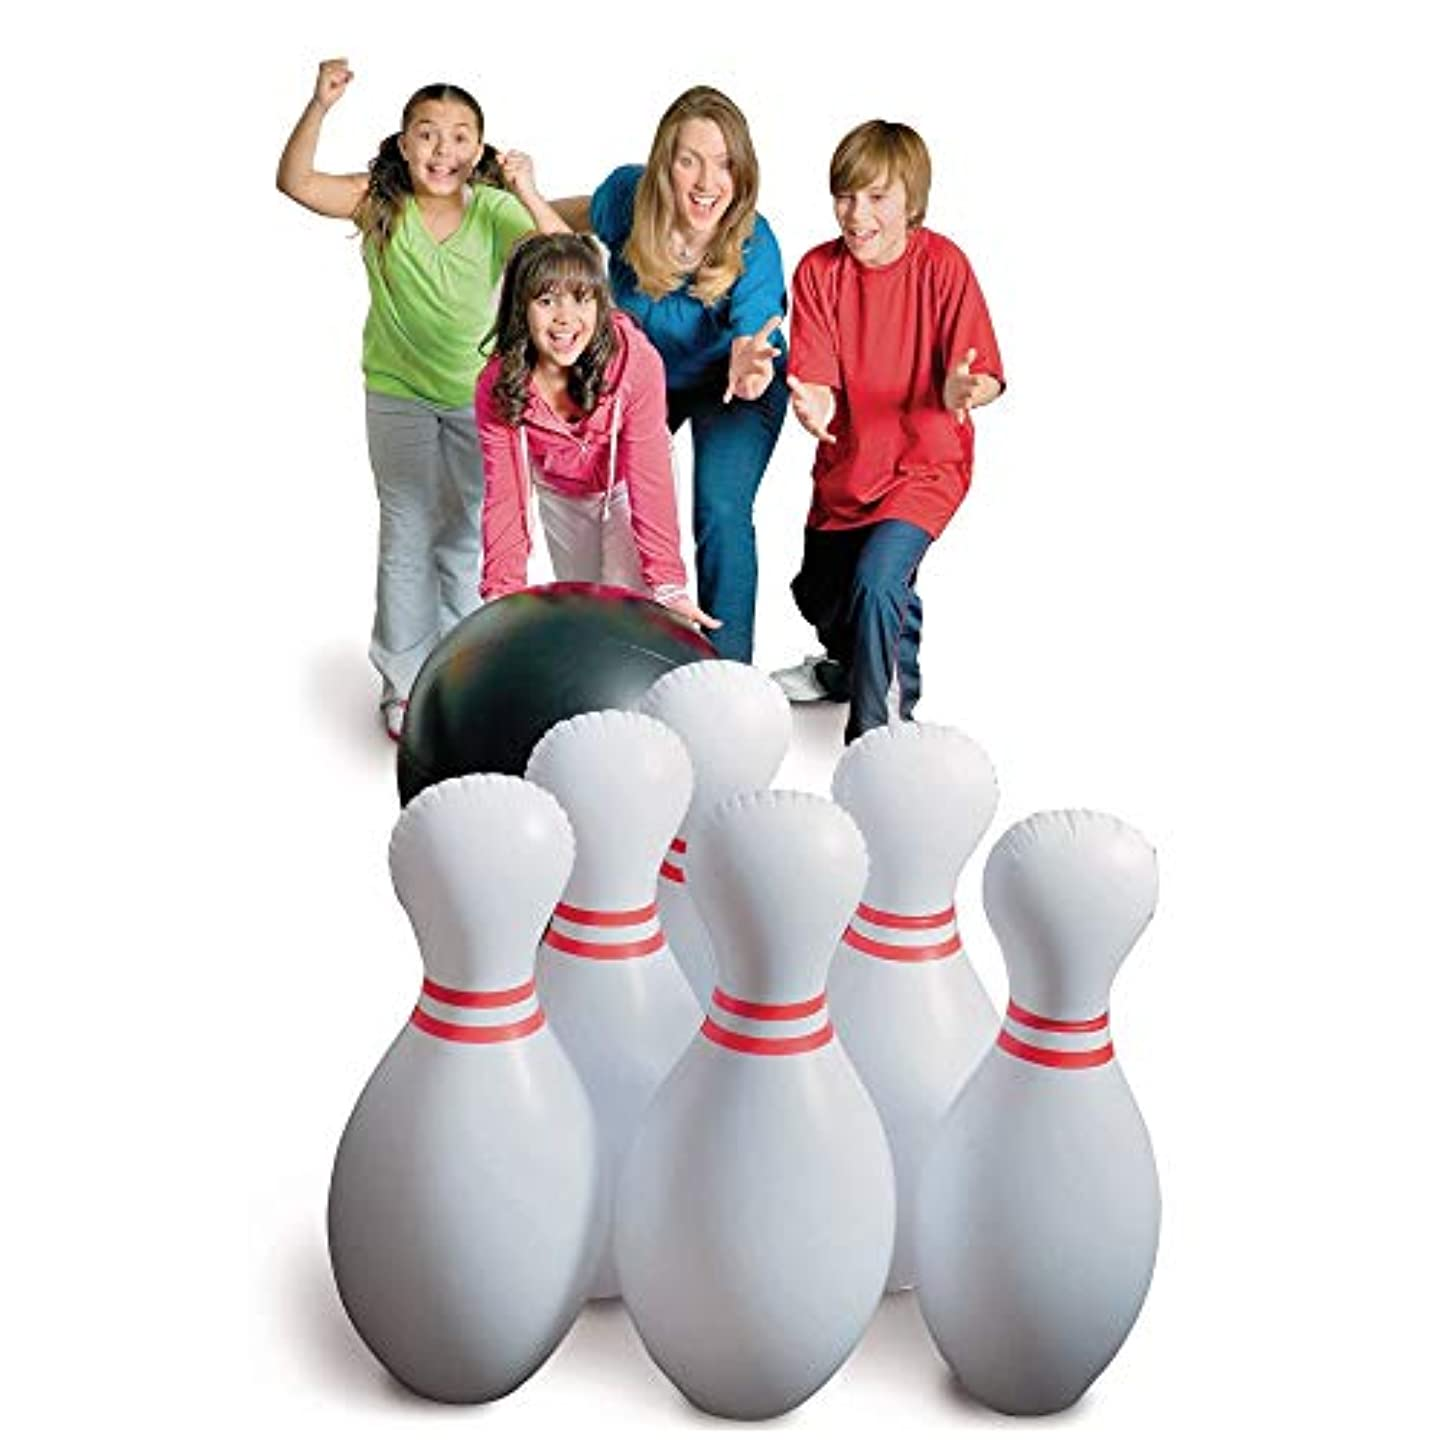 S&S Worldwide CF-10245 Jumbo Inflatable Bowling Set (Pack of 11)